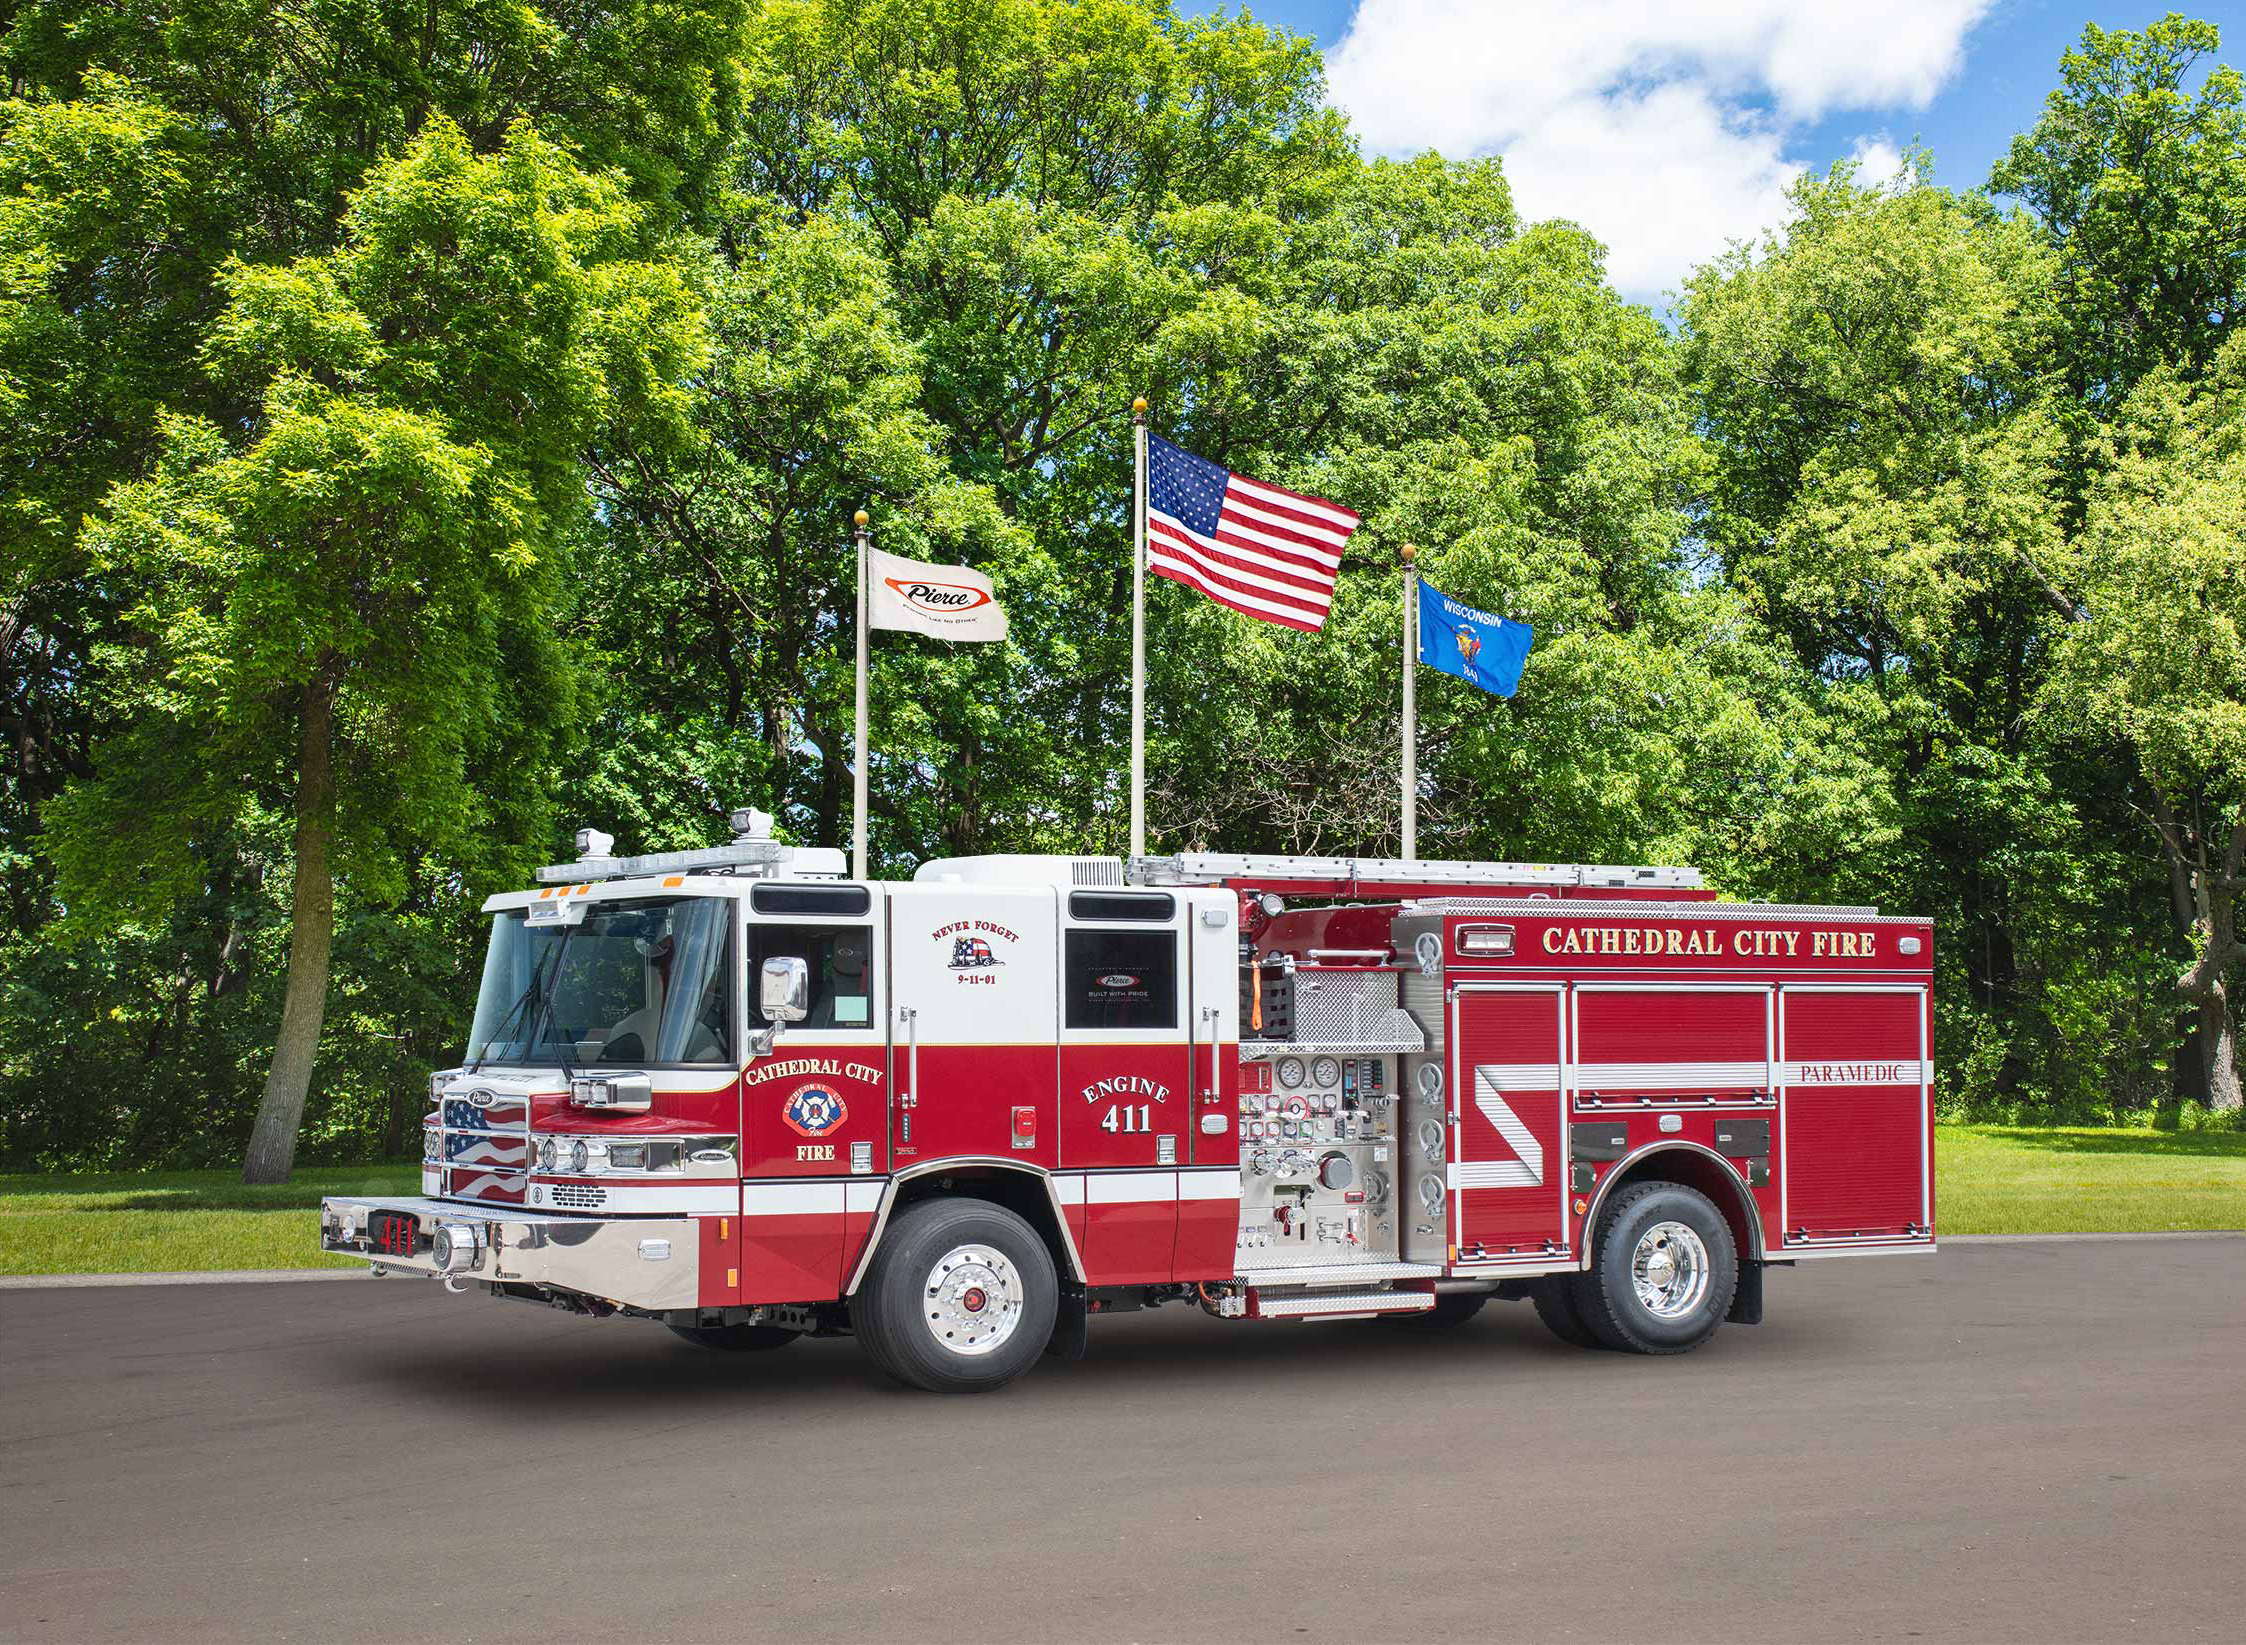 Cathedral City Fire Department - Pumper